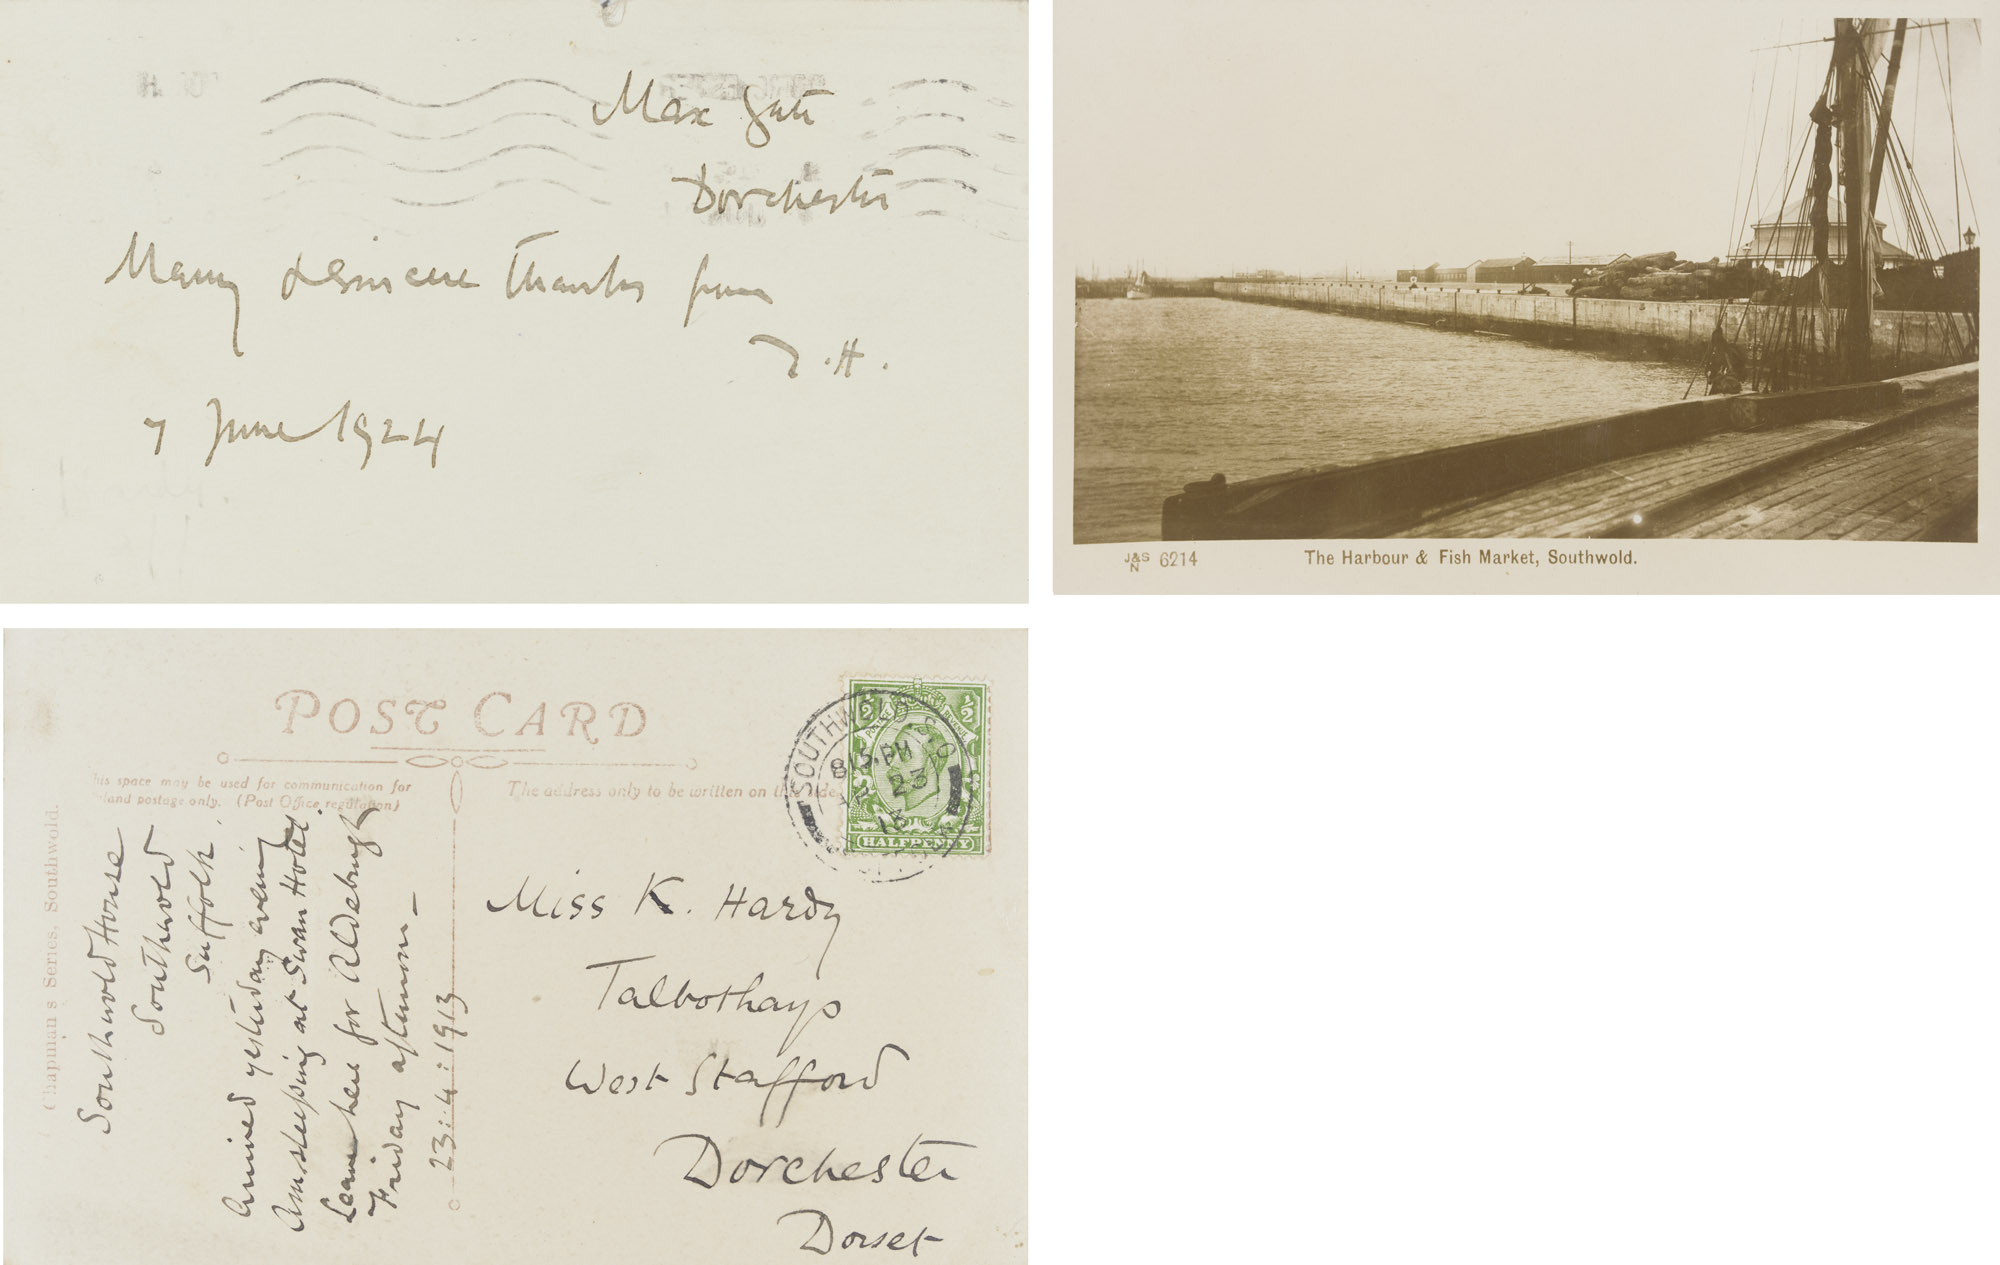 HARDY, Thomas (1840-1928). An autograph picture postcard (unsigned) and two autograph correspondence cards signed ('Thomas Hardy', 'T.H.') to various recipients, Dorchester and Southwold, 10 May 1892 - 7 June 1924, in the earliest apologising to Lady Metcalfe for not writing earlier about her invitation, writing from Southwold in 1913 to 'Miss K. Hardy' [his sister Kate] to inform her of his arrival, and in 1924 sending a brief line of thanks to Mr and Mrs Leonard Rees, together 3 pages, oblong 8vo, the picture postcard depicting the harbour and fish market in Southwold.	 (3)